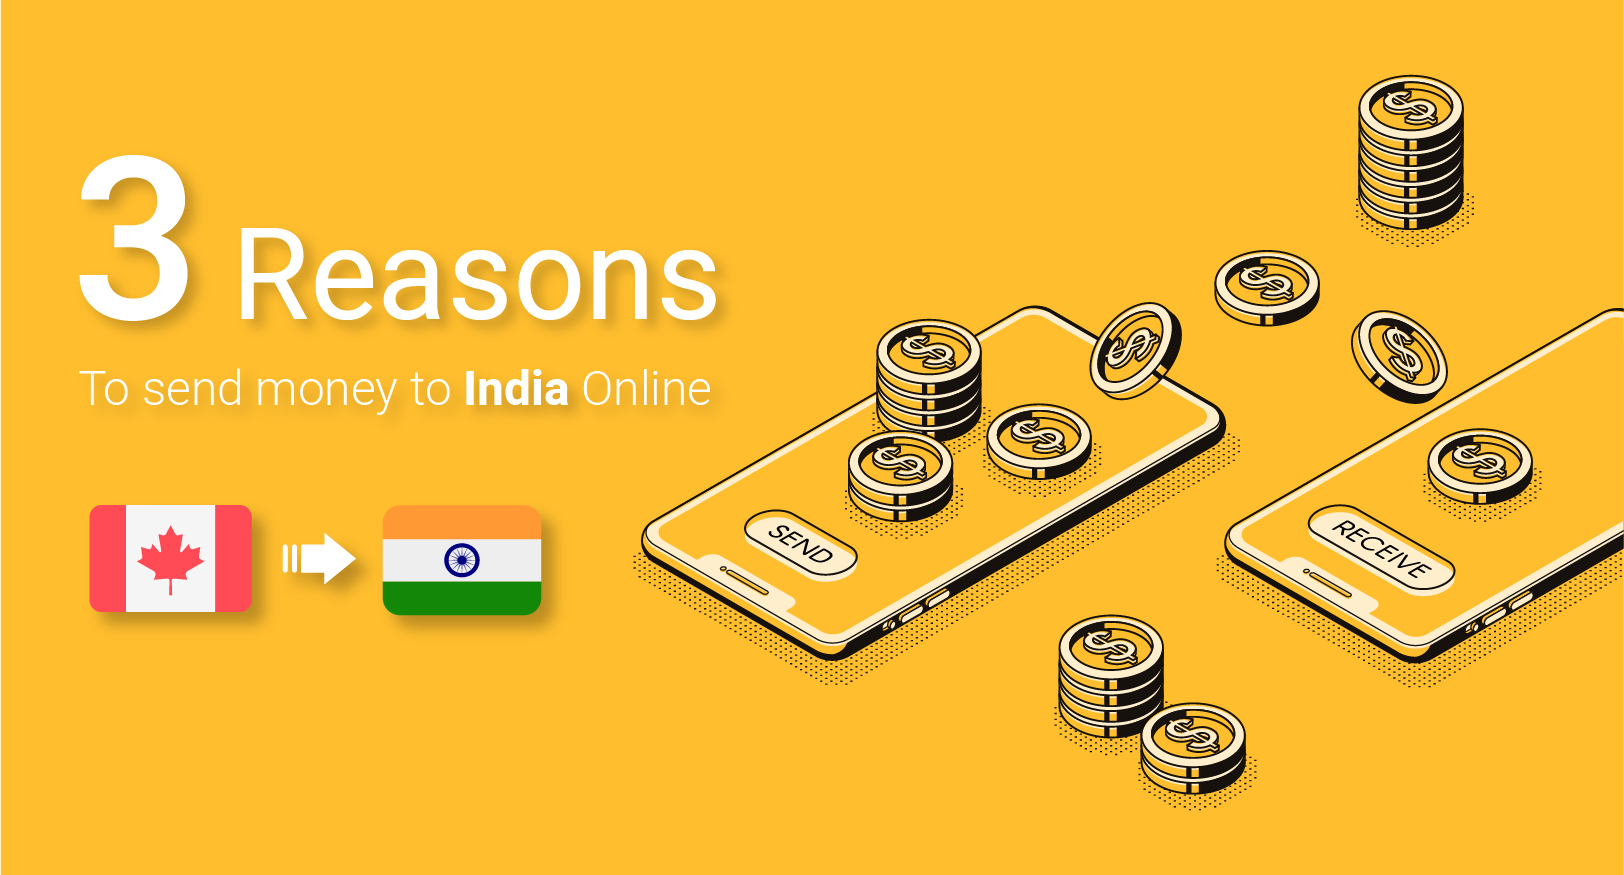 3 Reasons To Send Money To India Online